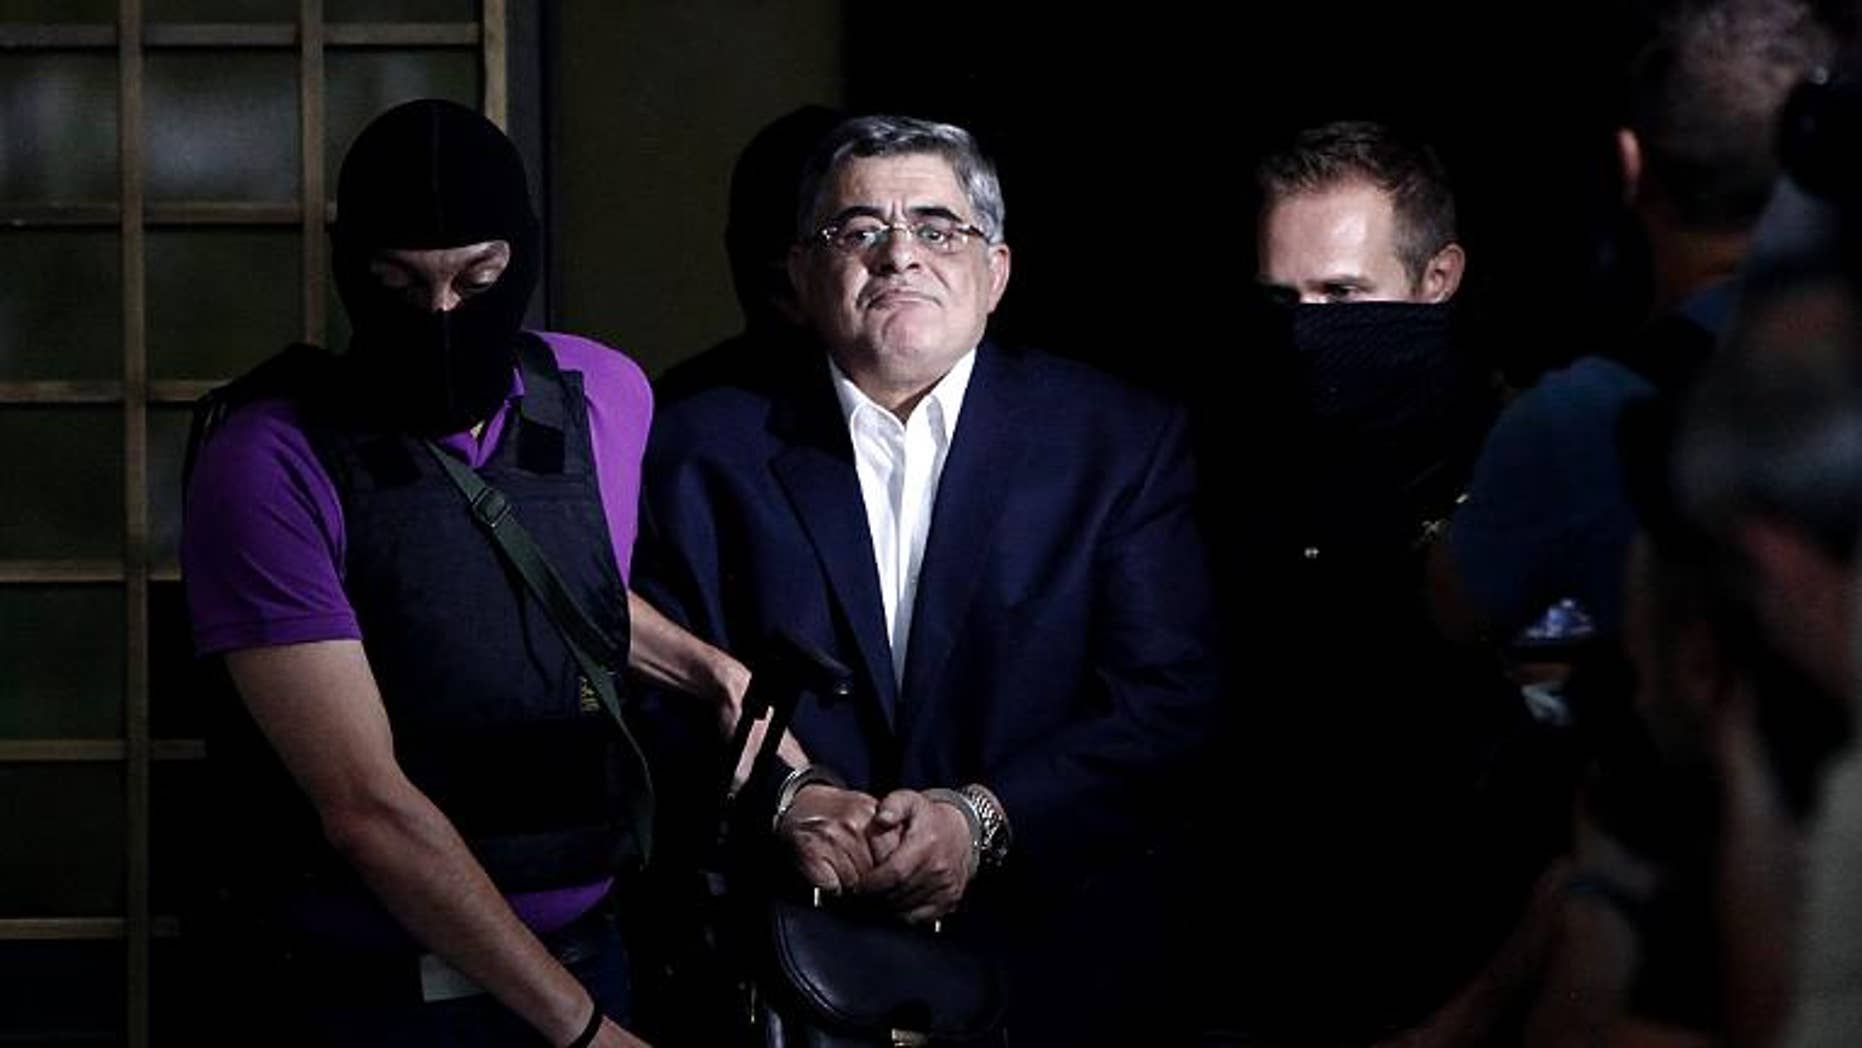 The leader of Greece's Golden Dawn party Nikos Michaloliakos is escorted by masked police officers in Athens, on September 28, 2013